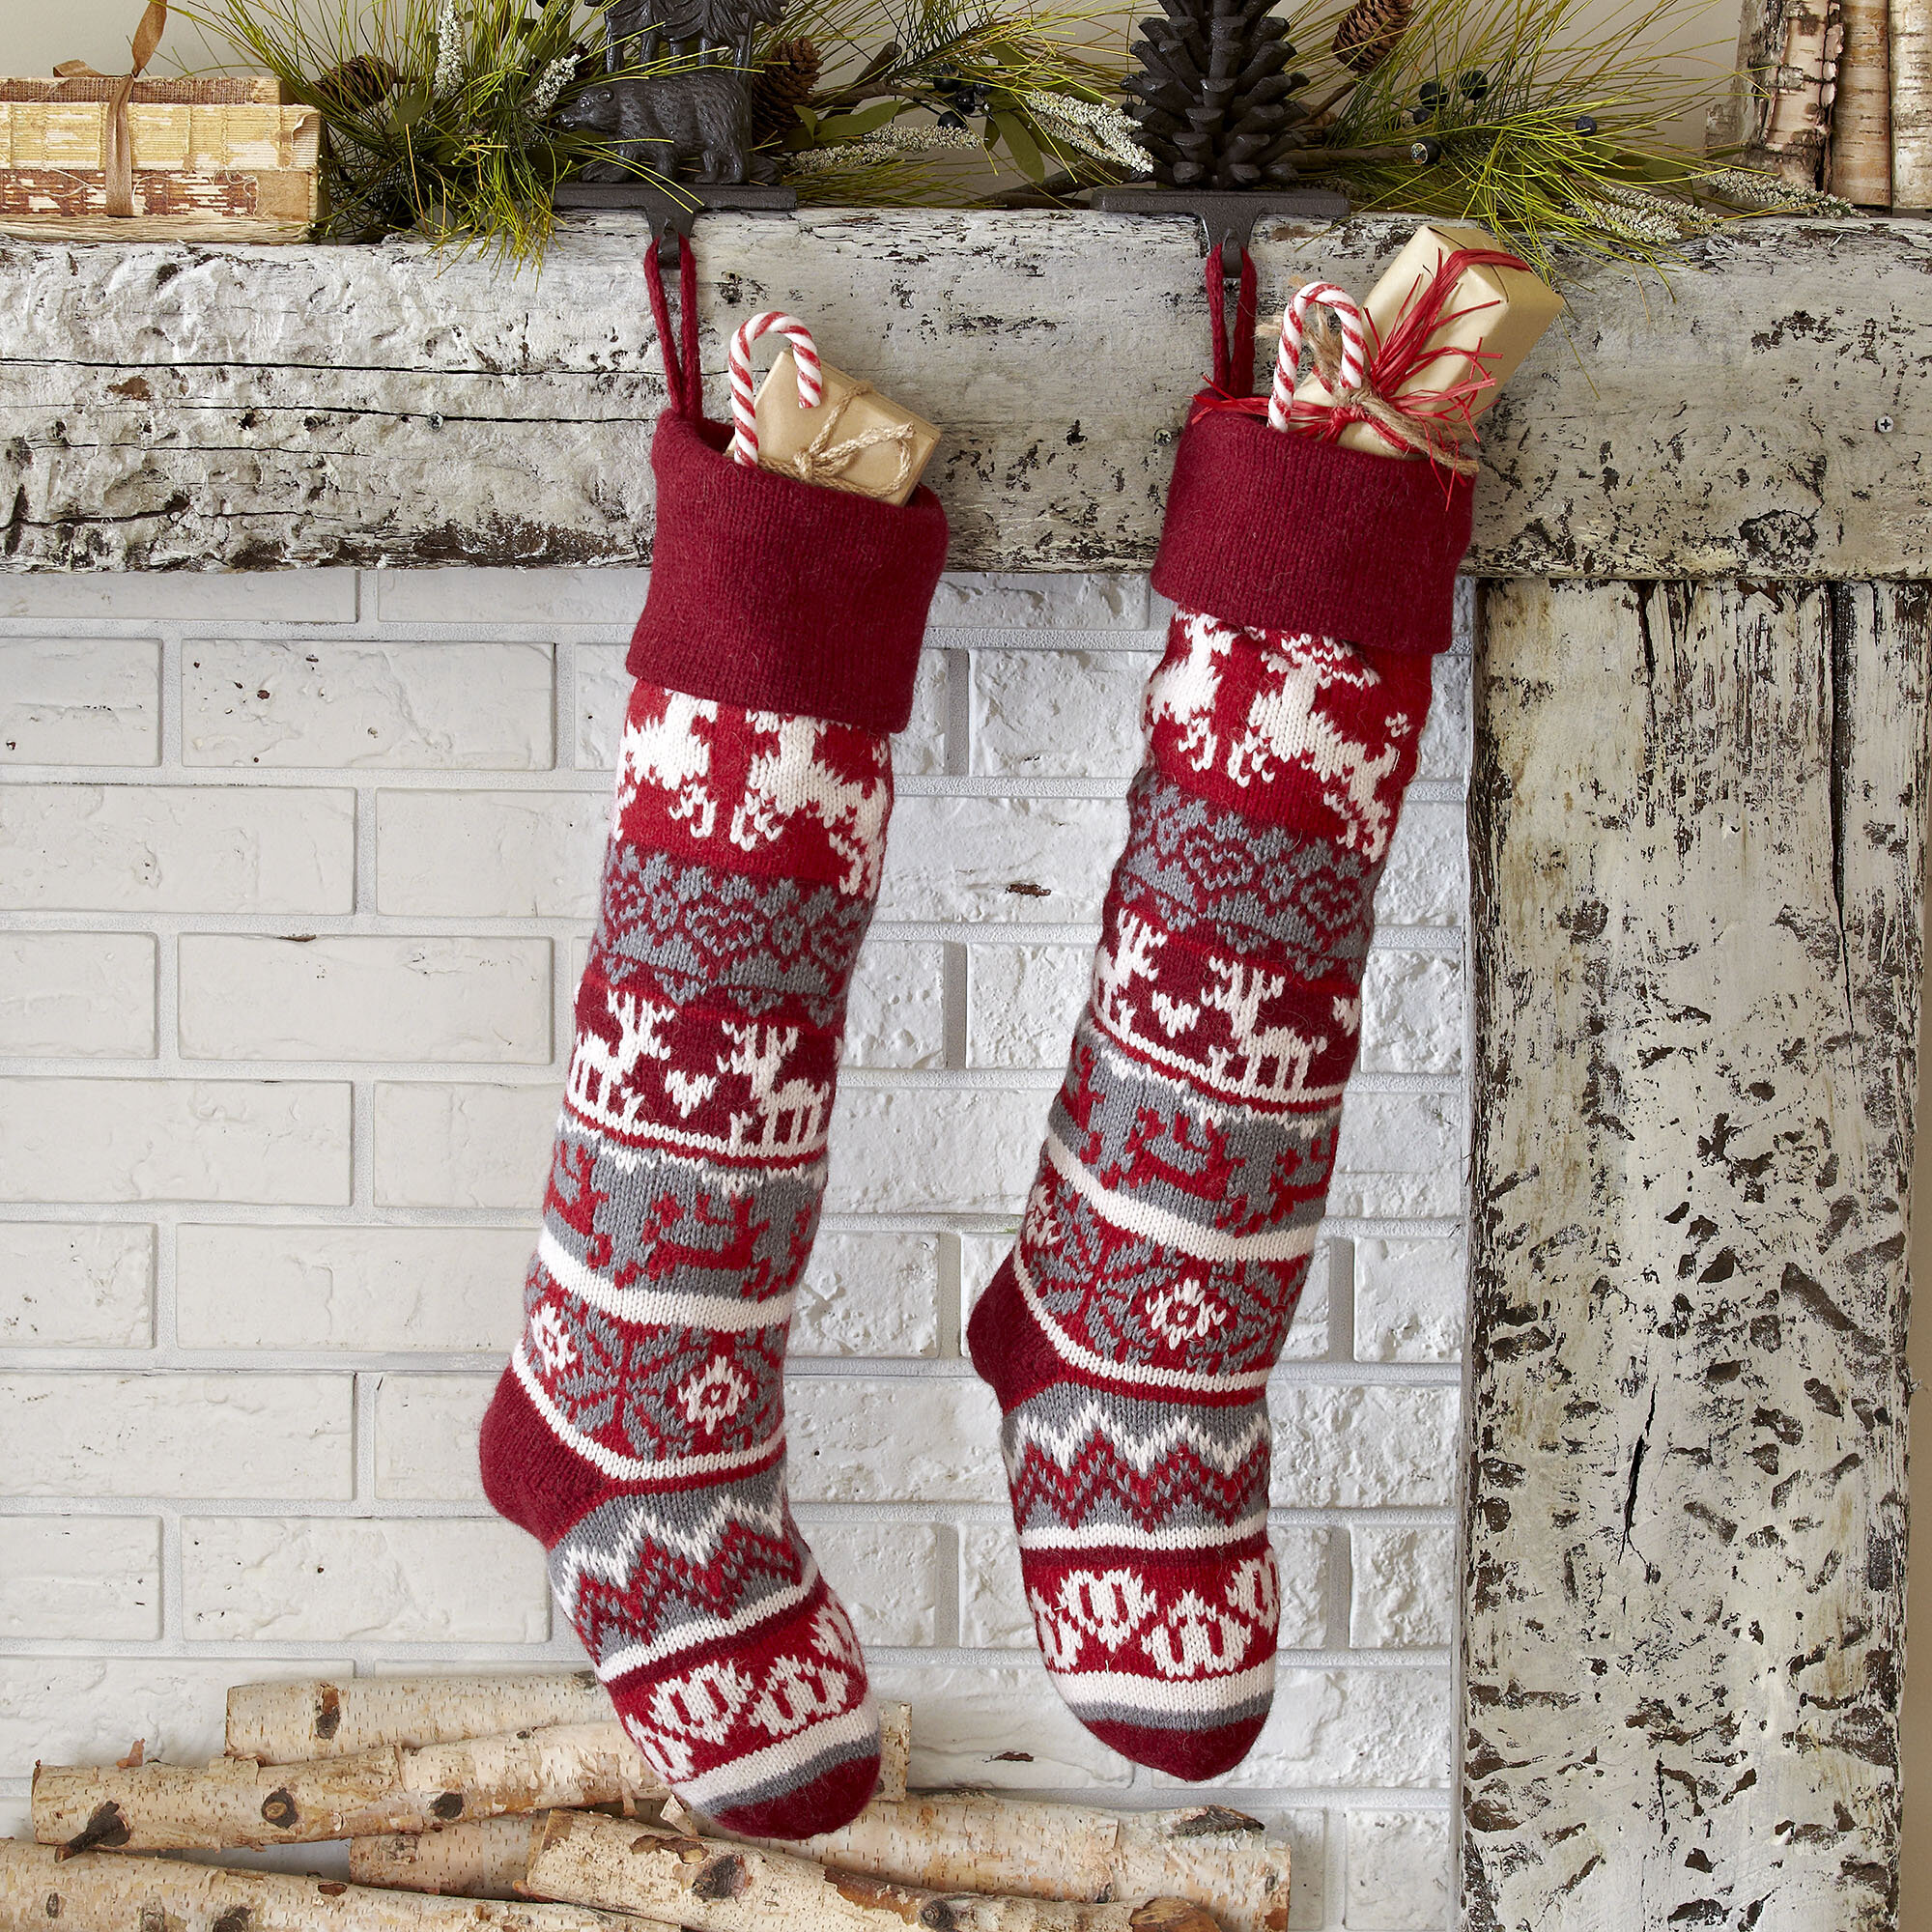 The Holiday Aisle Reindeer Classic Knit Stocking & Reviews | Wayfair